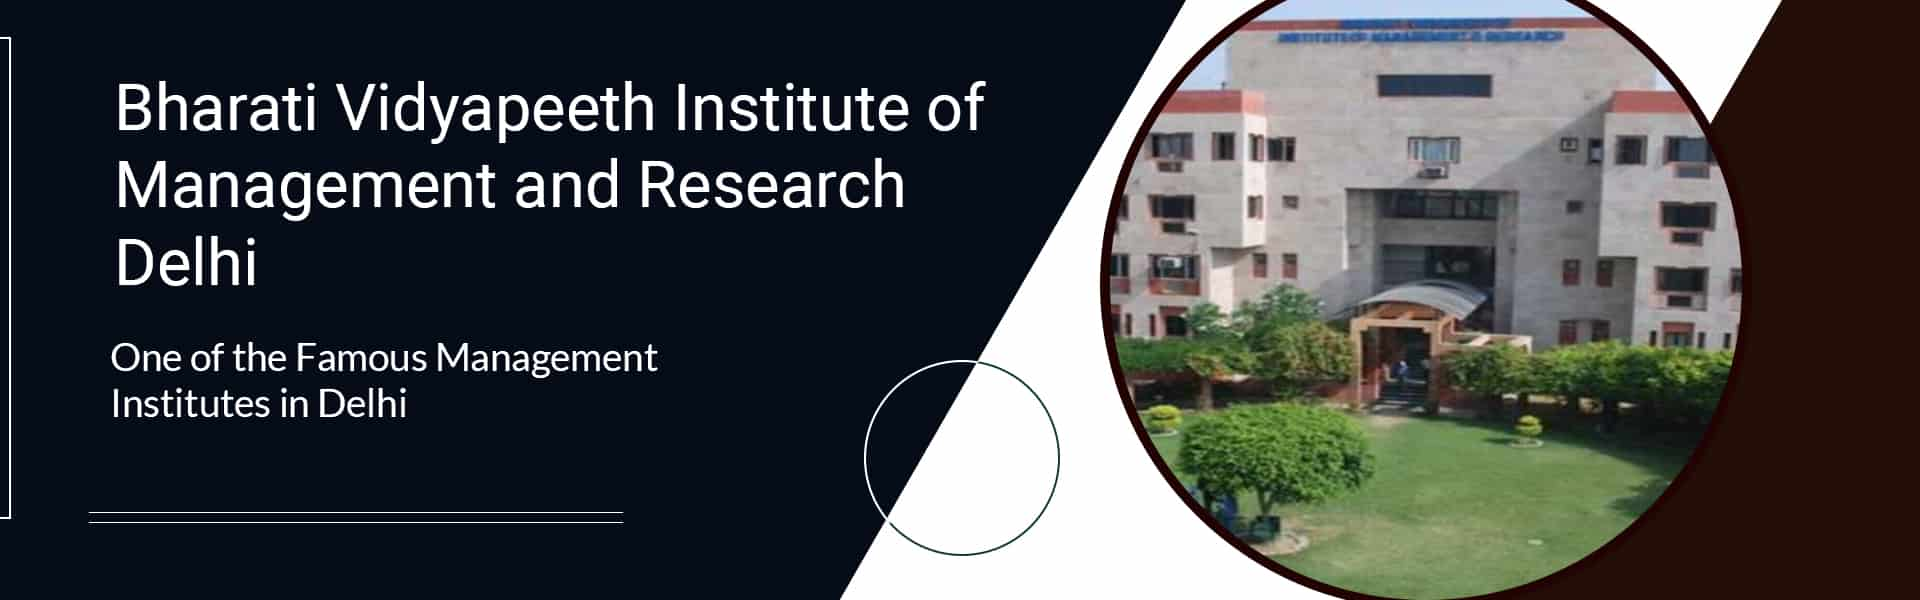 Bharati Vidyapeeth Institute of Management and Research (BVIMR), Delhi